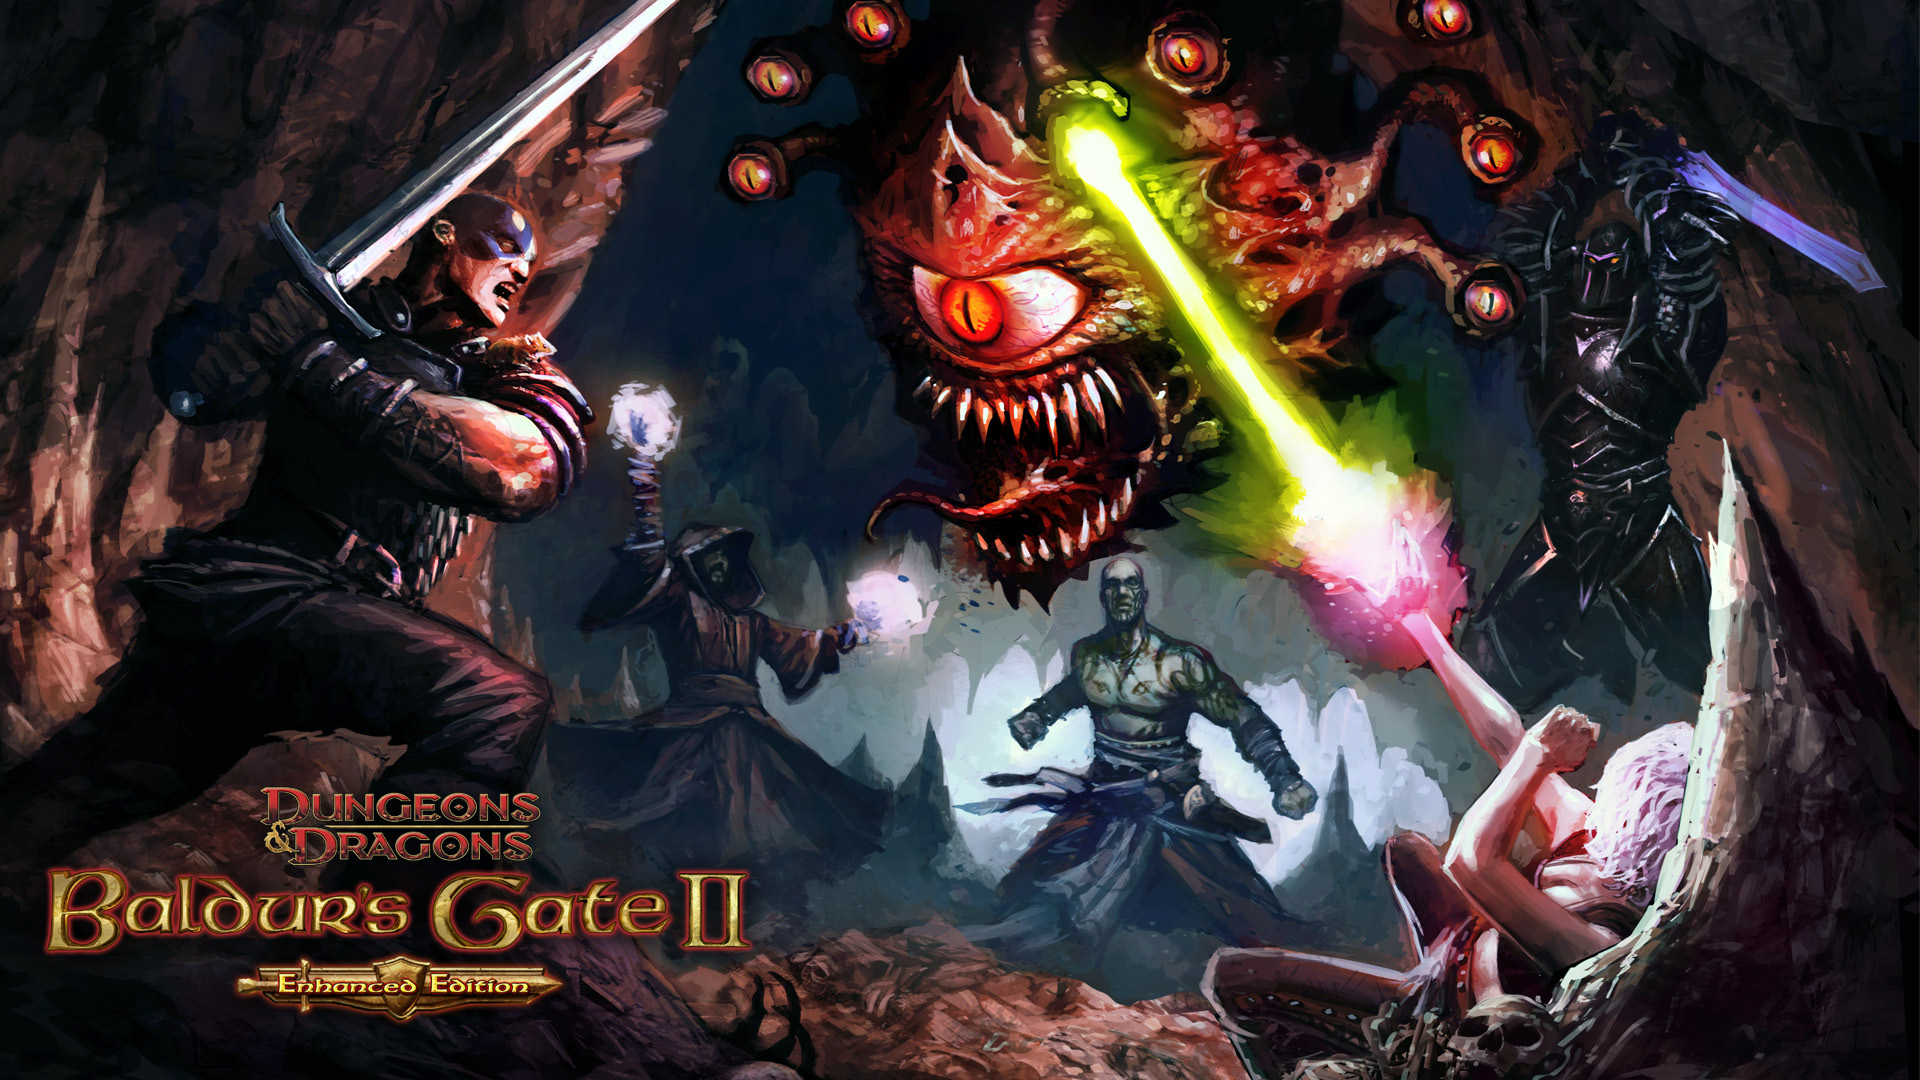 Baldur's Gate II: Enhanced Edition is a well-regarded revival of the PC role-playing classic.